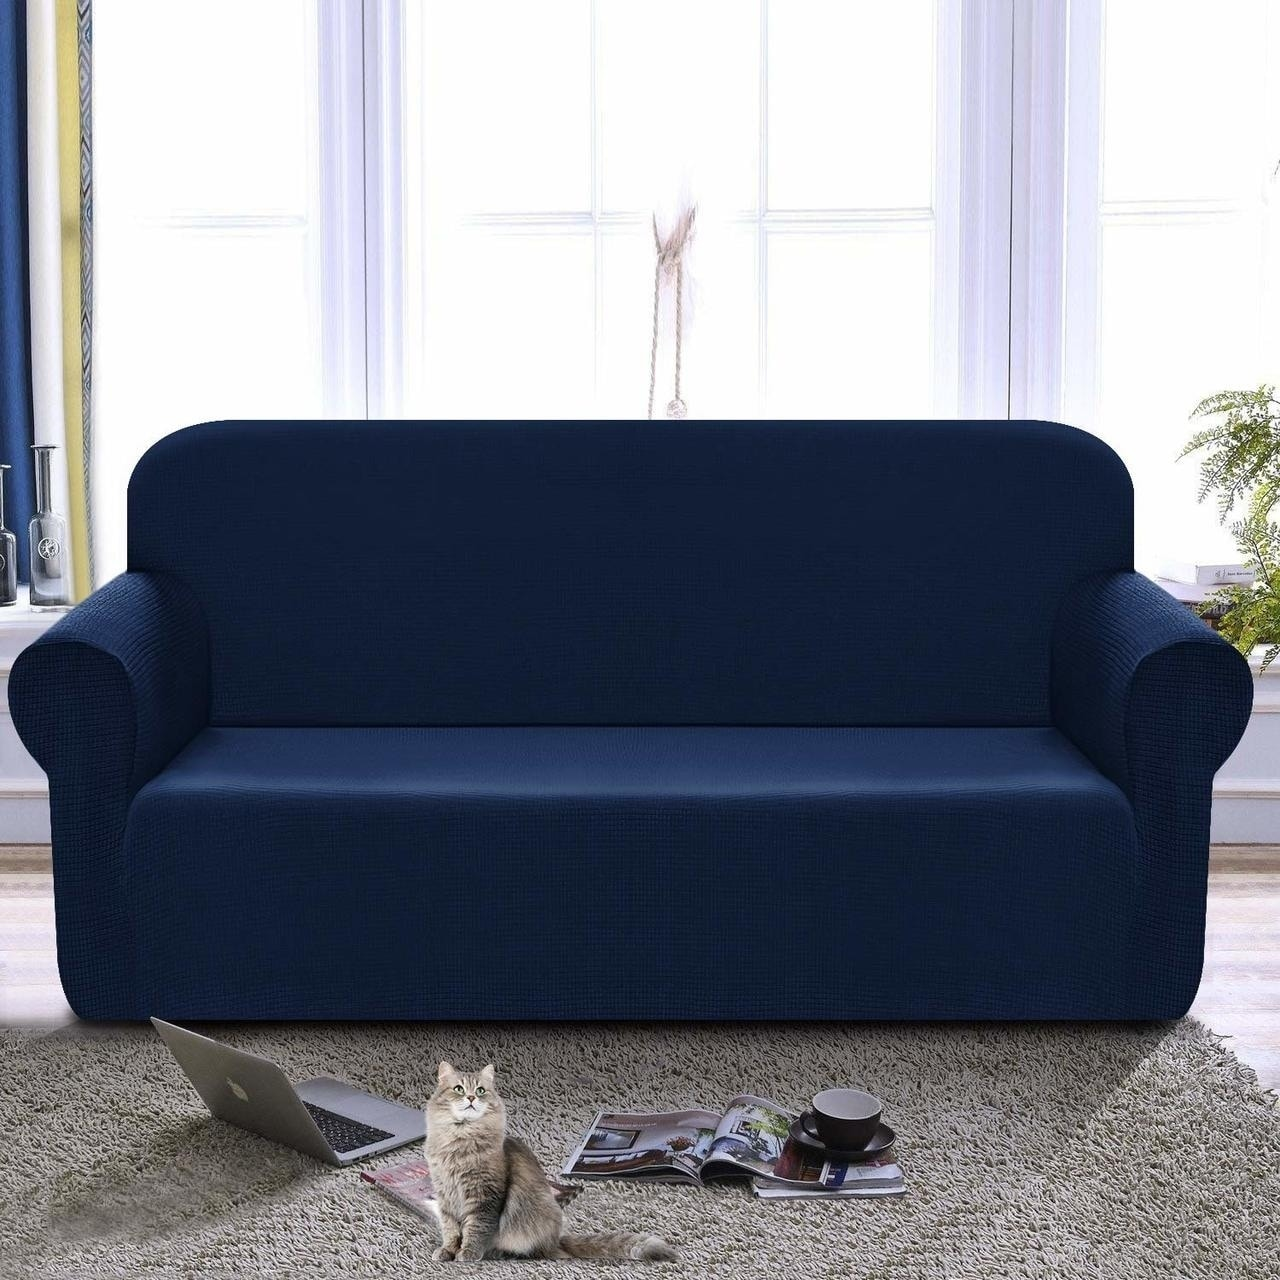 Loveseat Cover 1 Piece Couch Covers